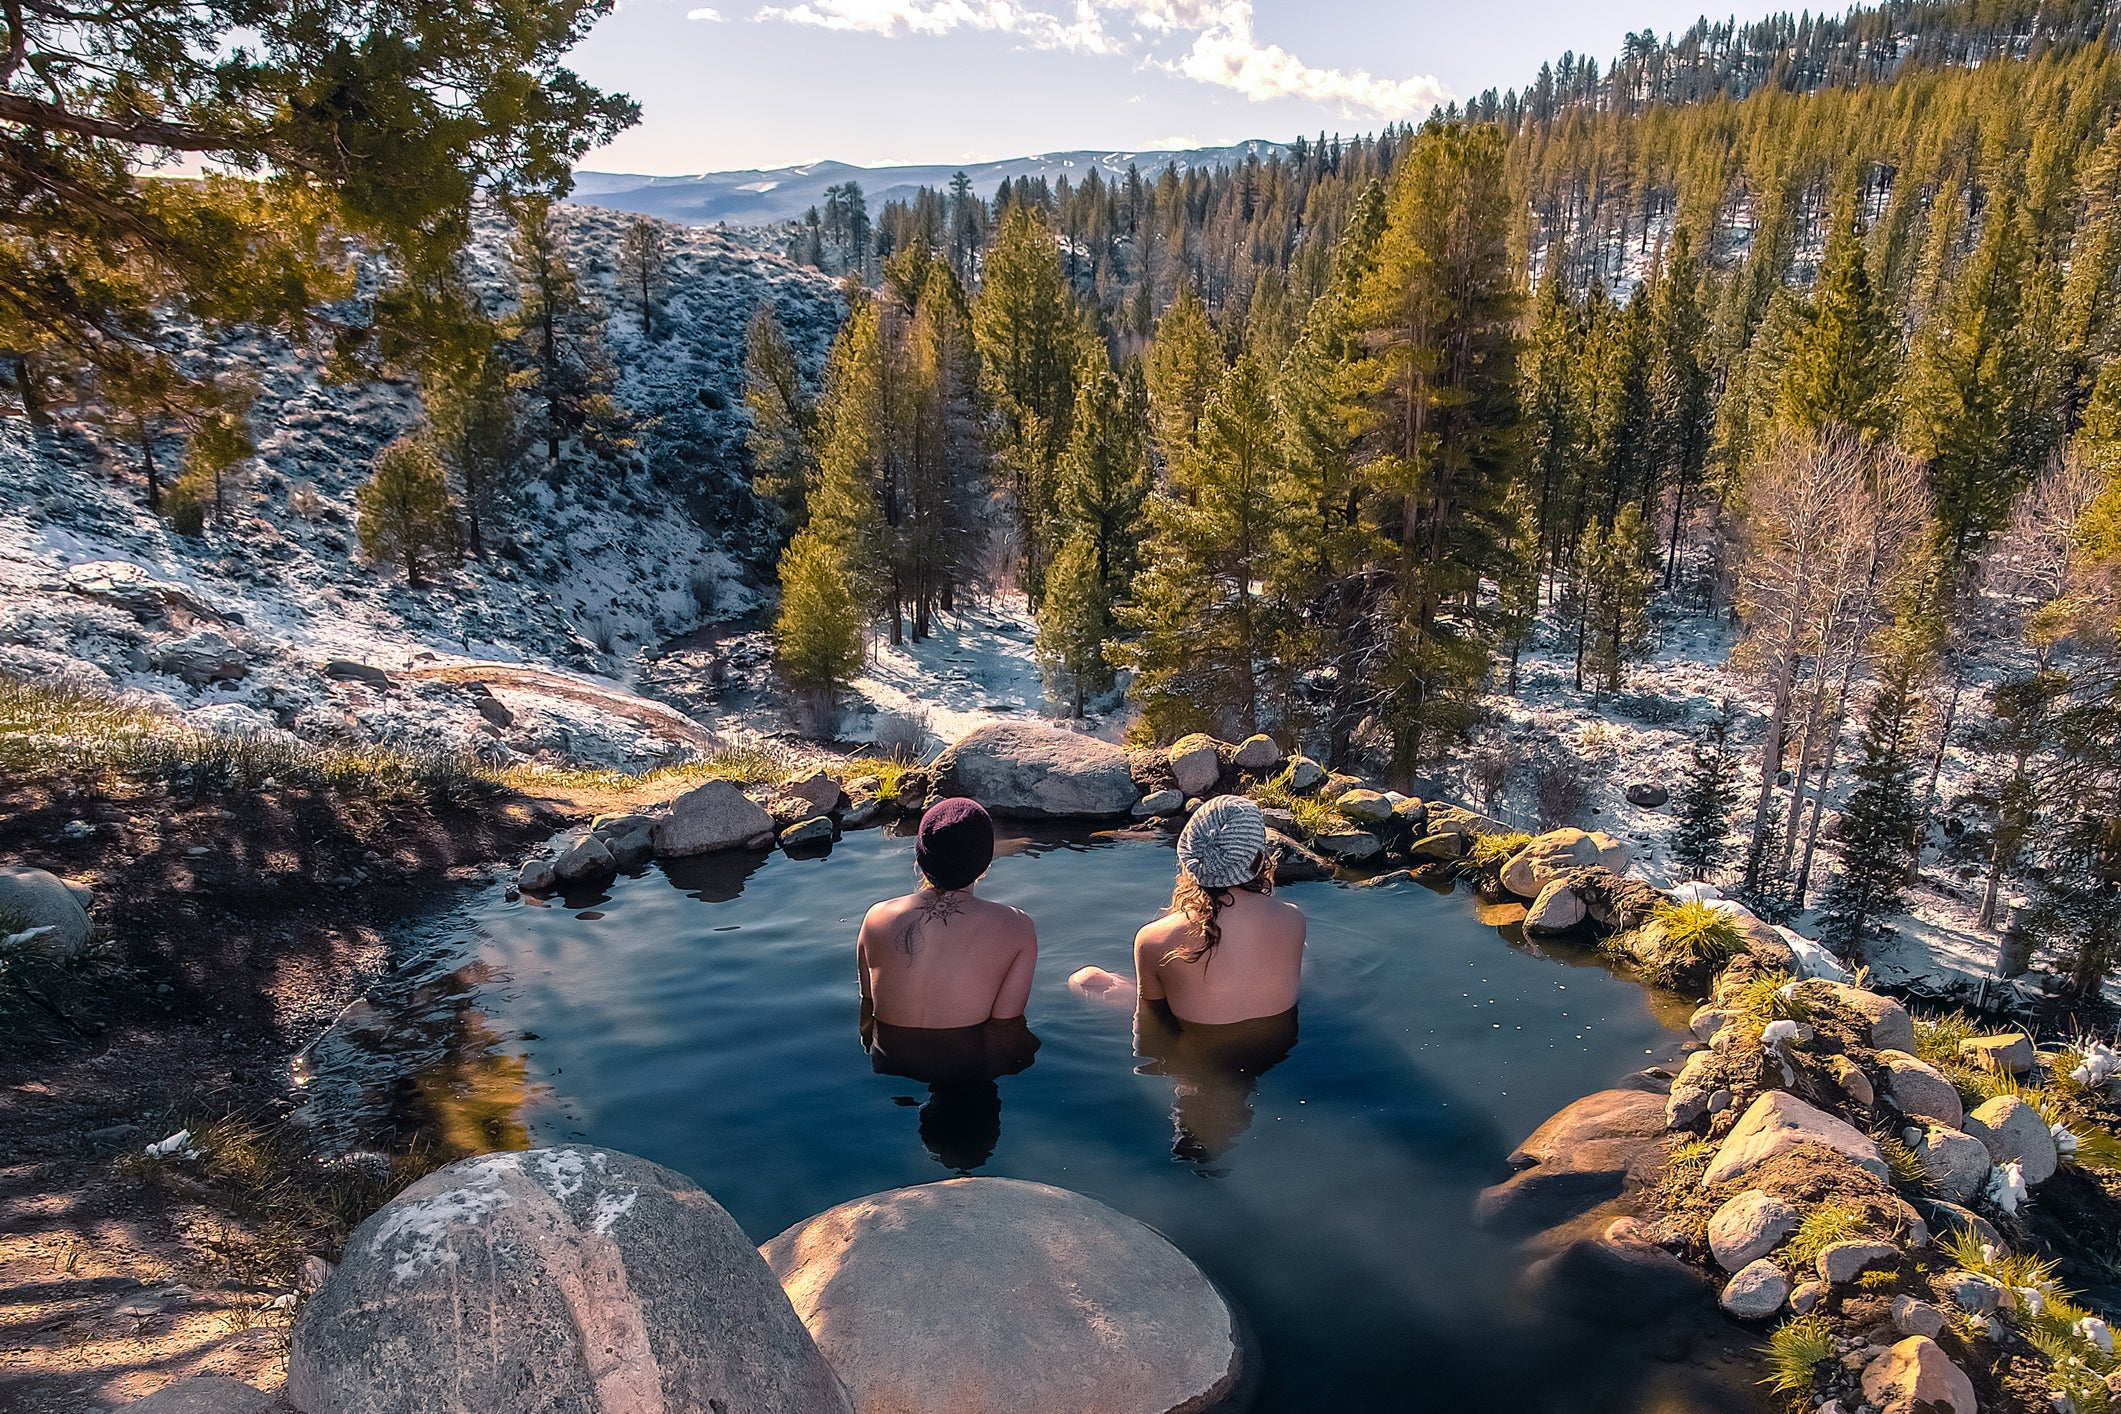 A gift from nature: Everything you need to know about California's best hot springs - The Points Guy